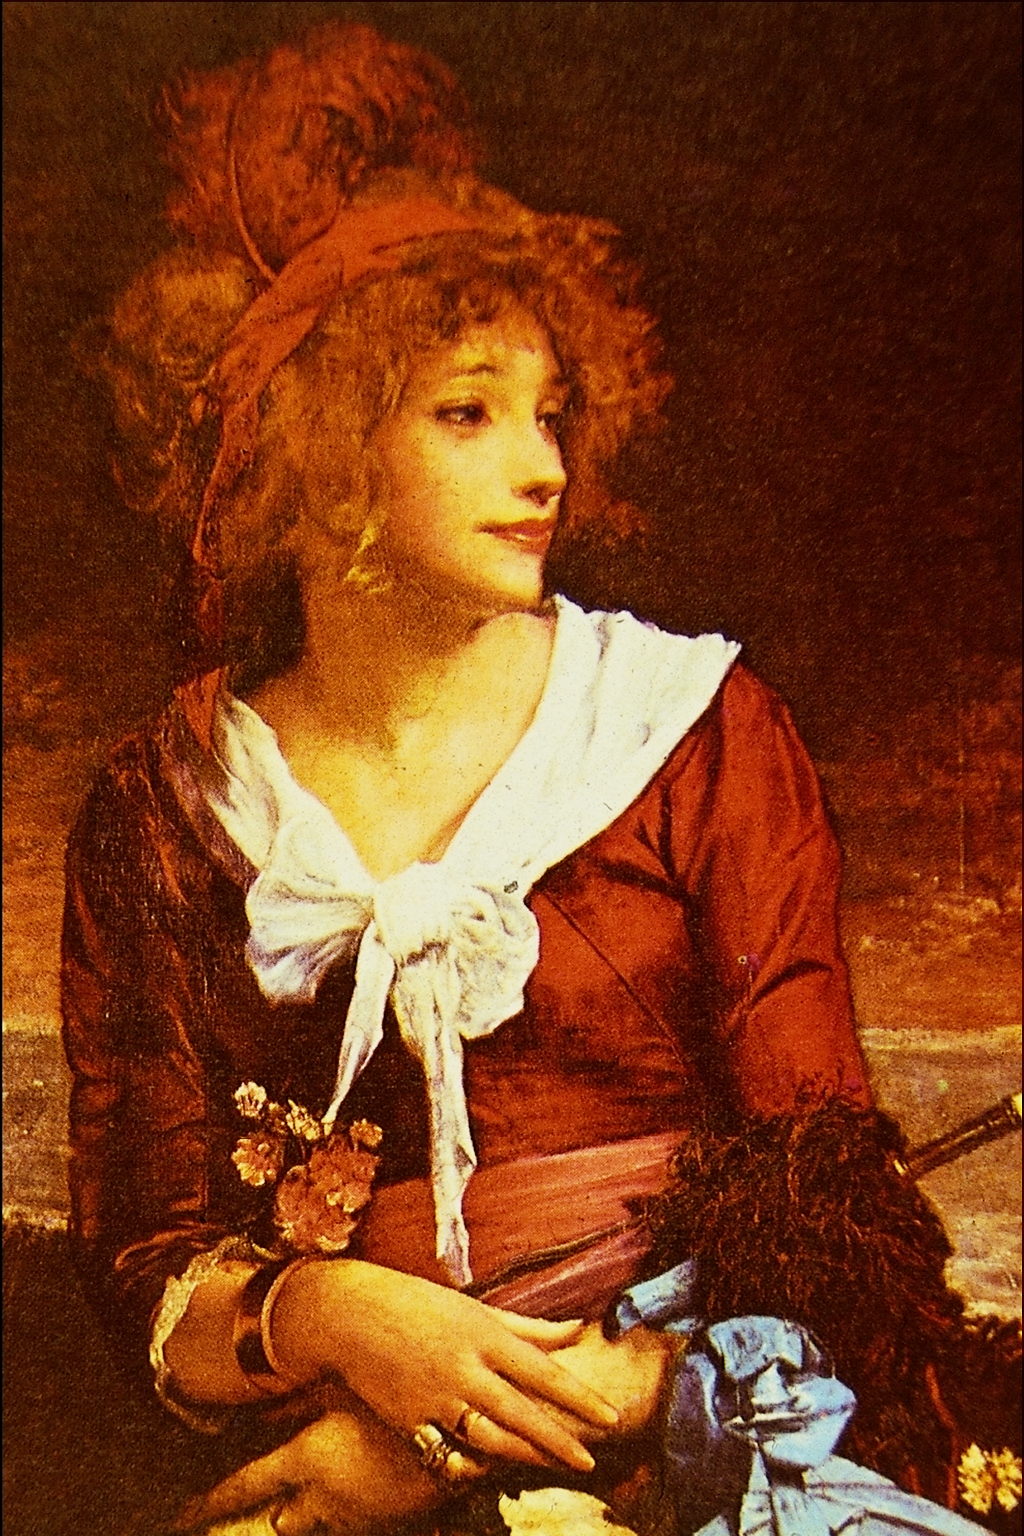 http://upload.wikimedia.org/wikipedia/commons/8/8a/At_the_Seashore_-_Jules_Adolphe_Goupil.png